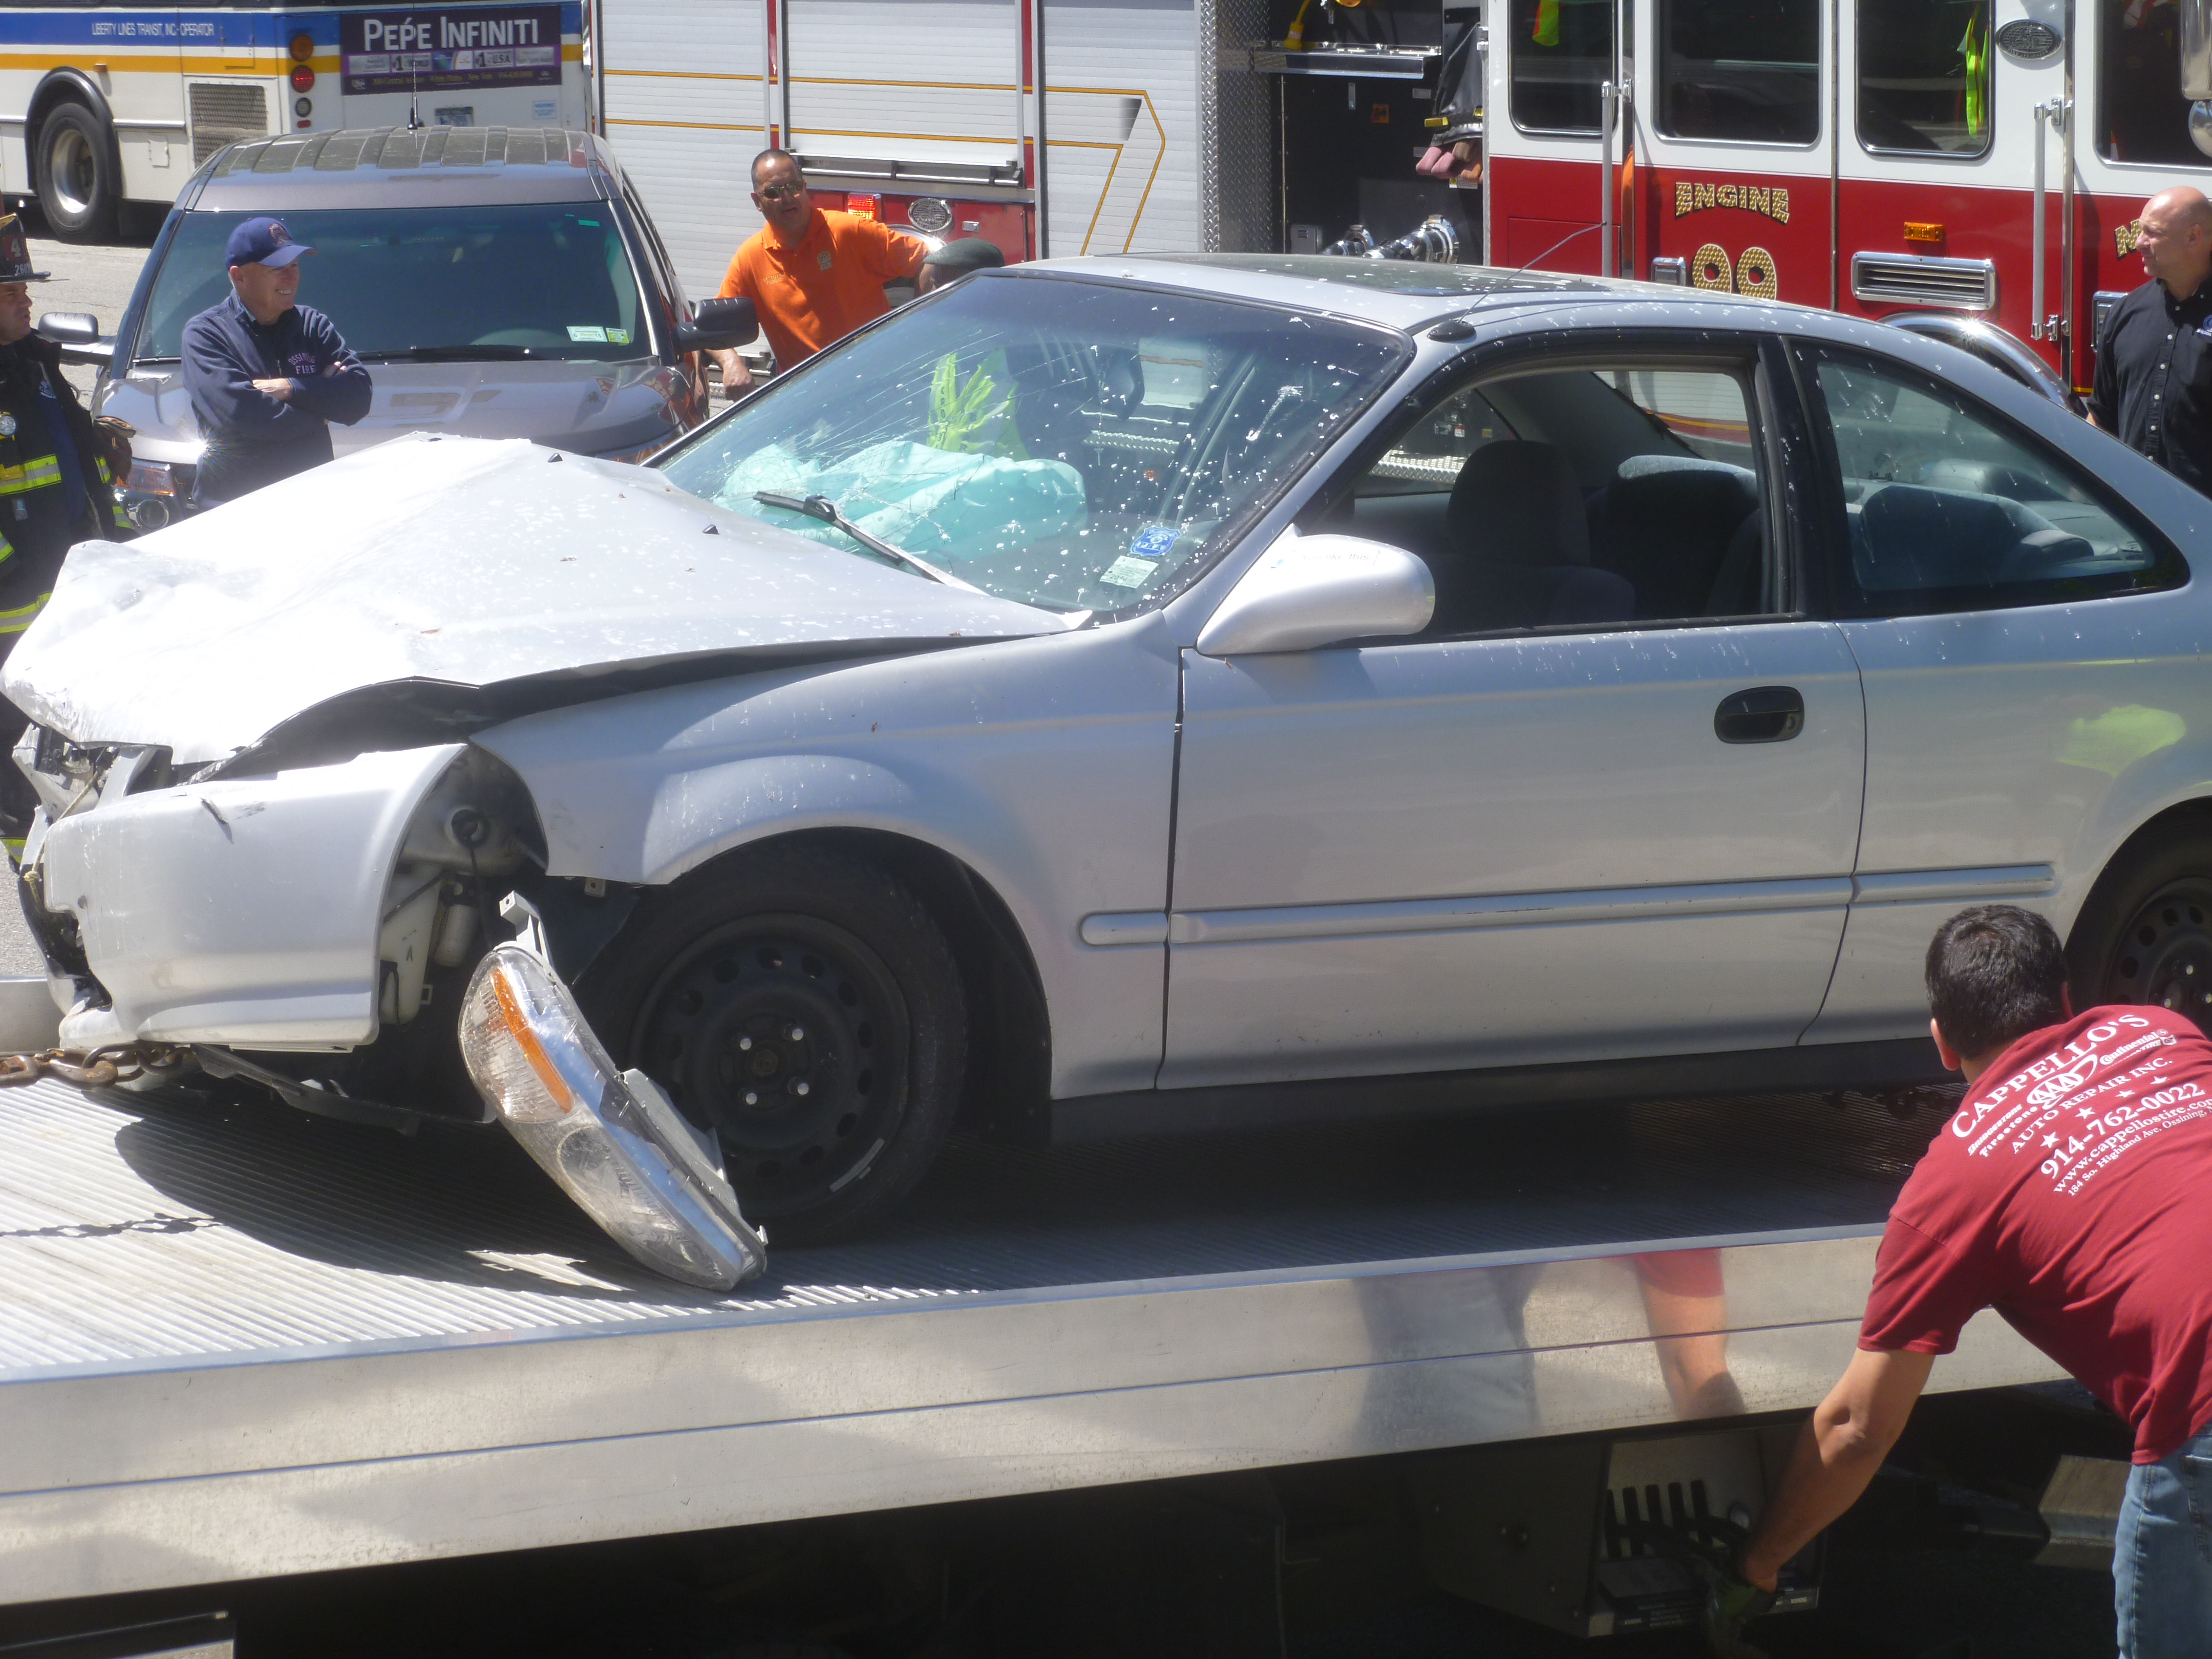 A vehicle involved in an accident on Route 9 in Ossining on Thursday, May 29, is towed away.